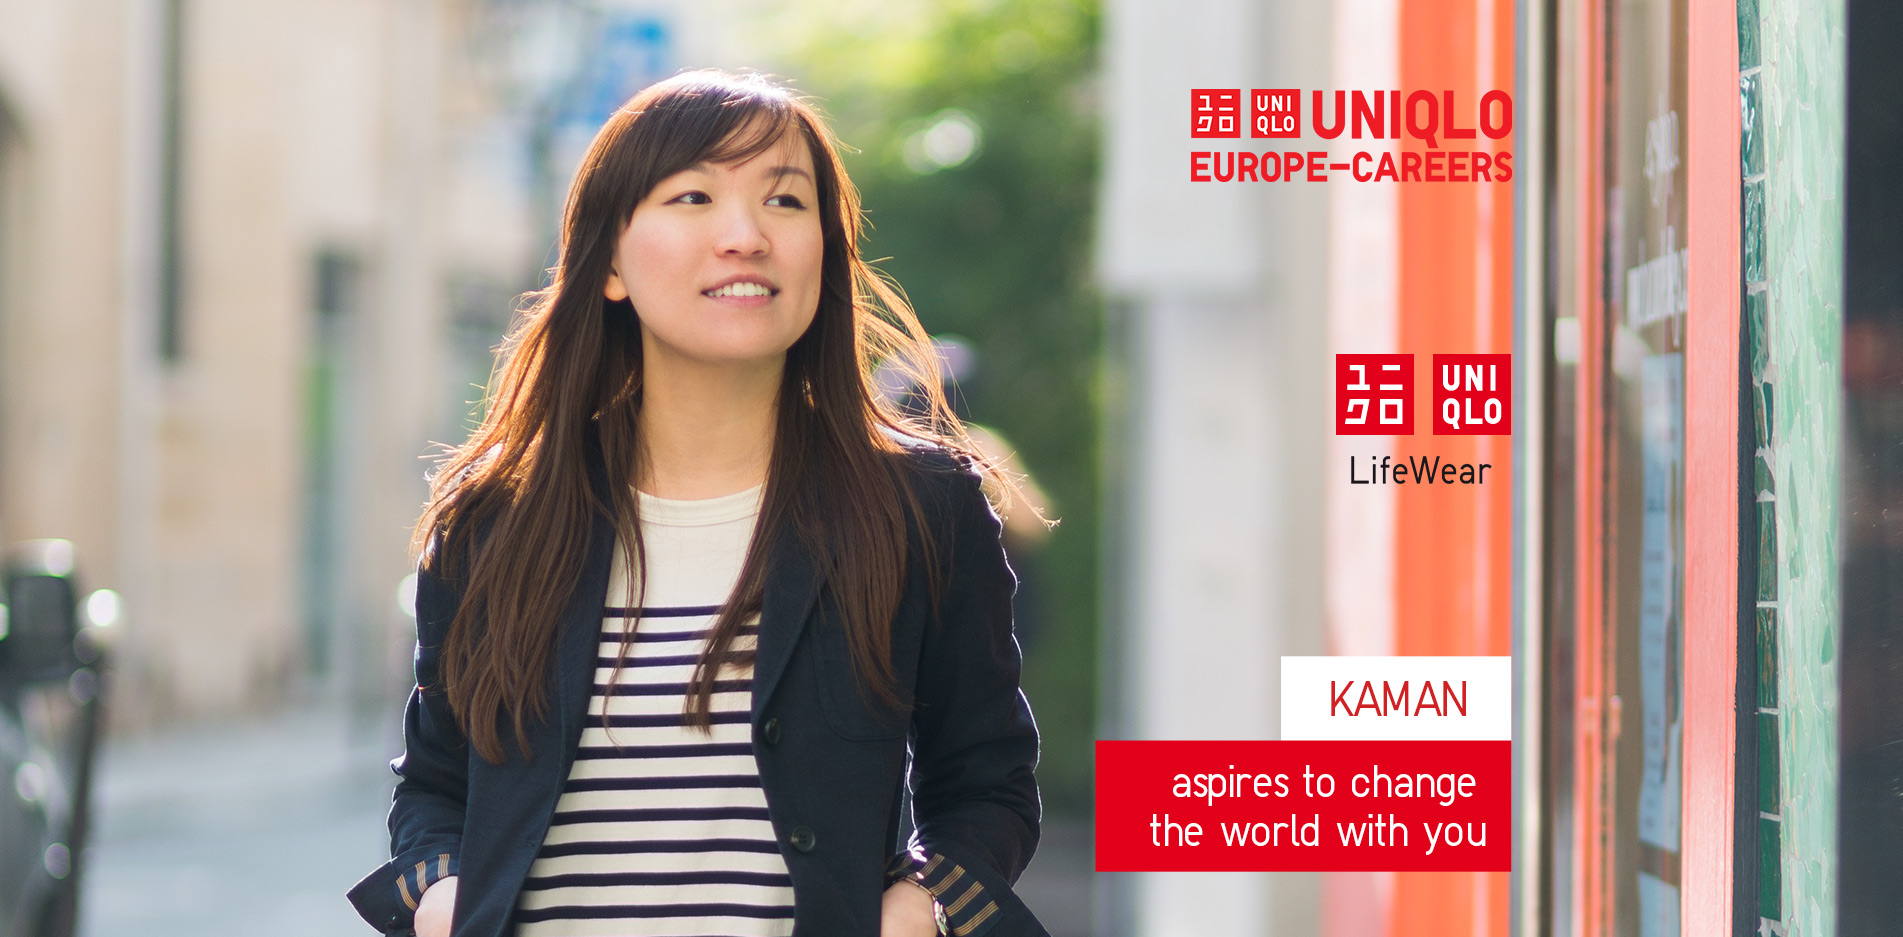 Uniqlo Europe Careers